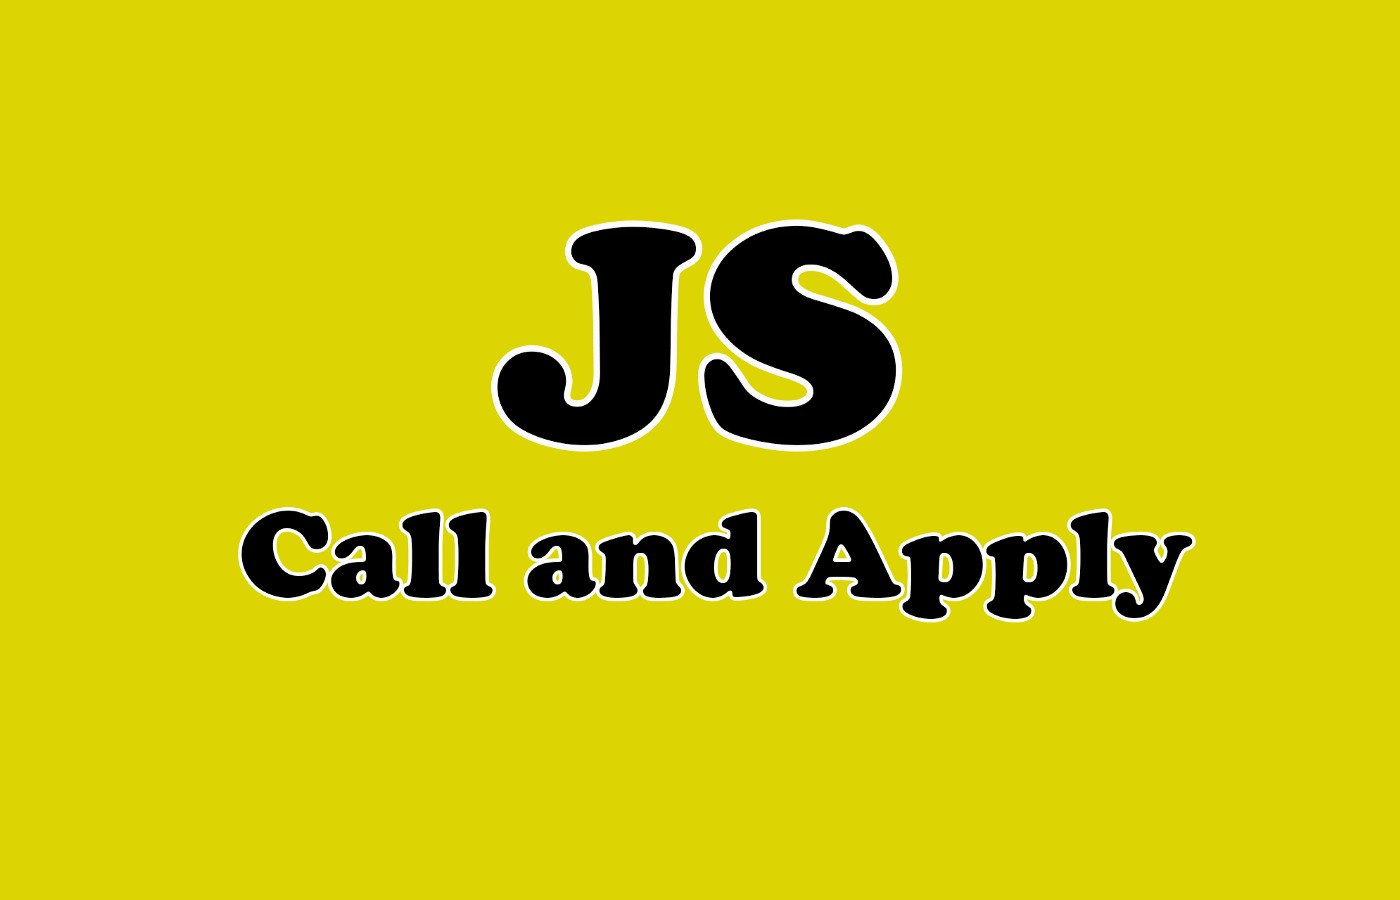 JavaScript call and apply.